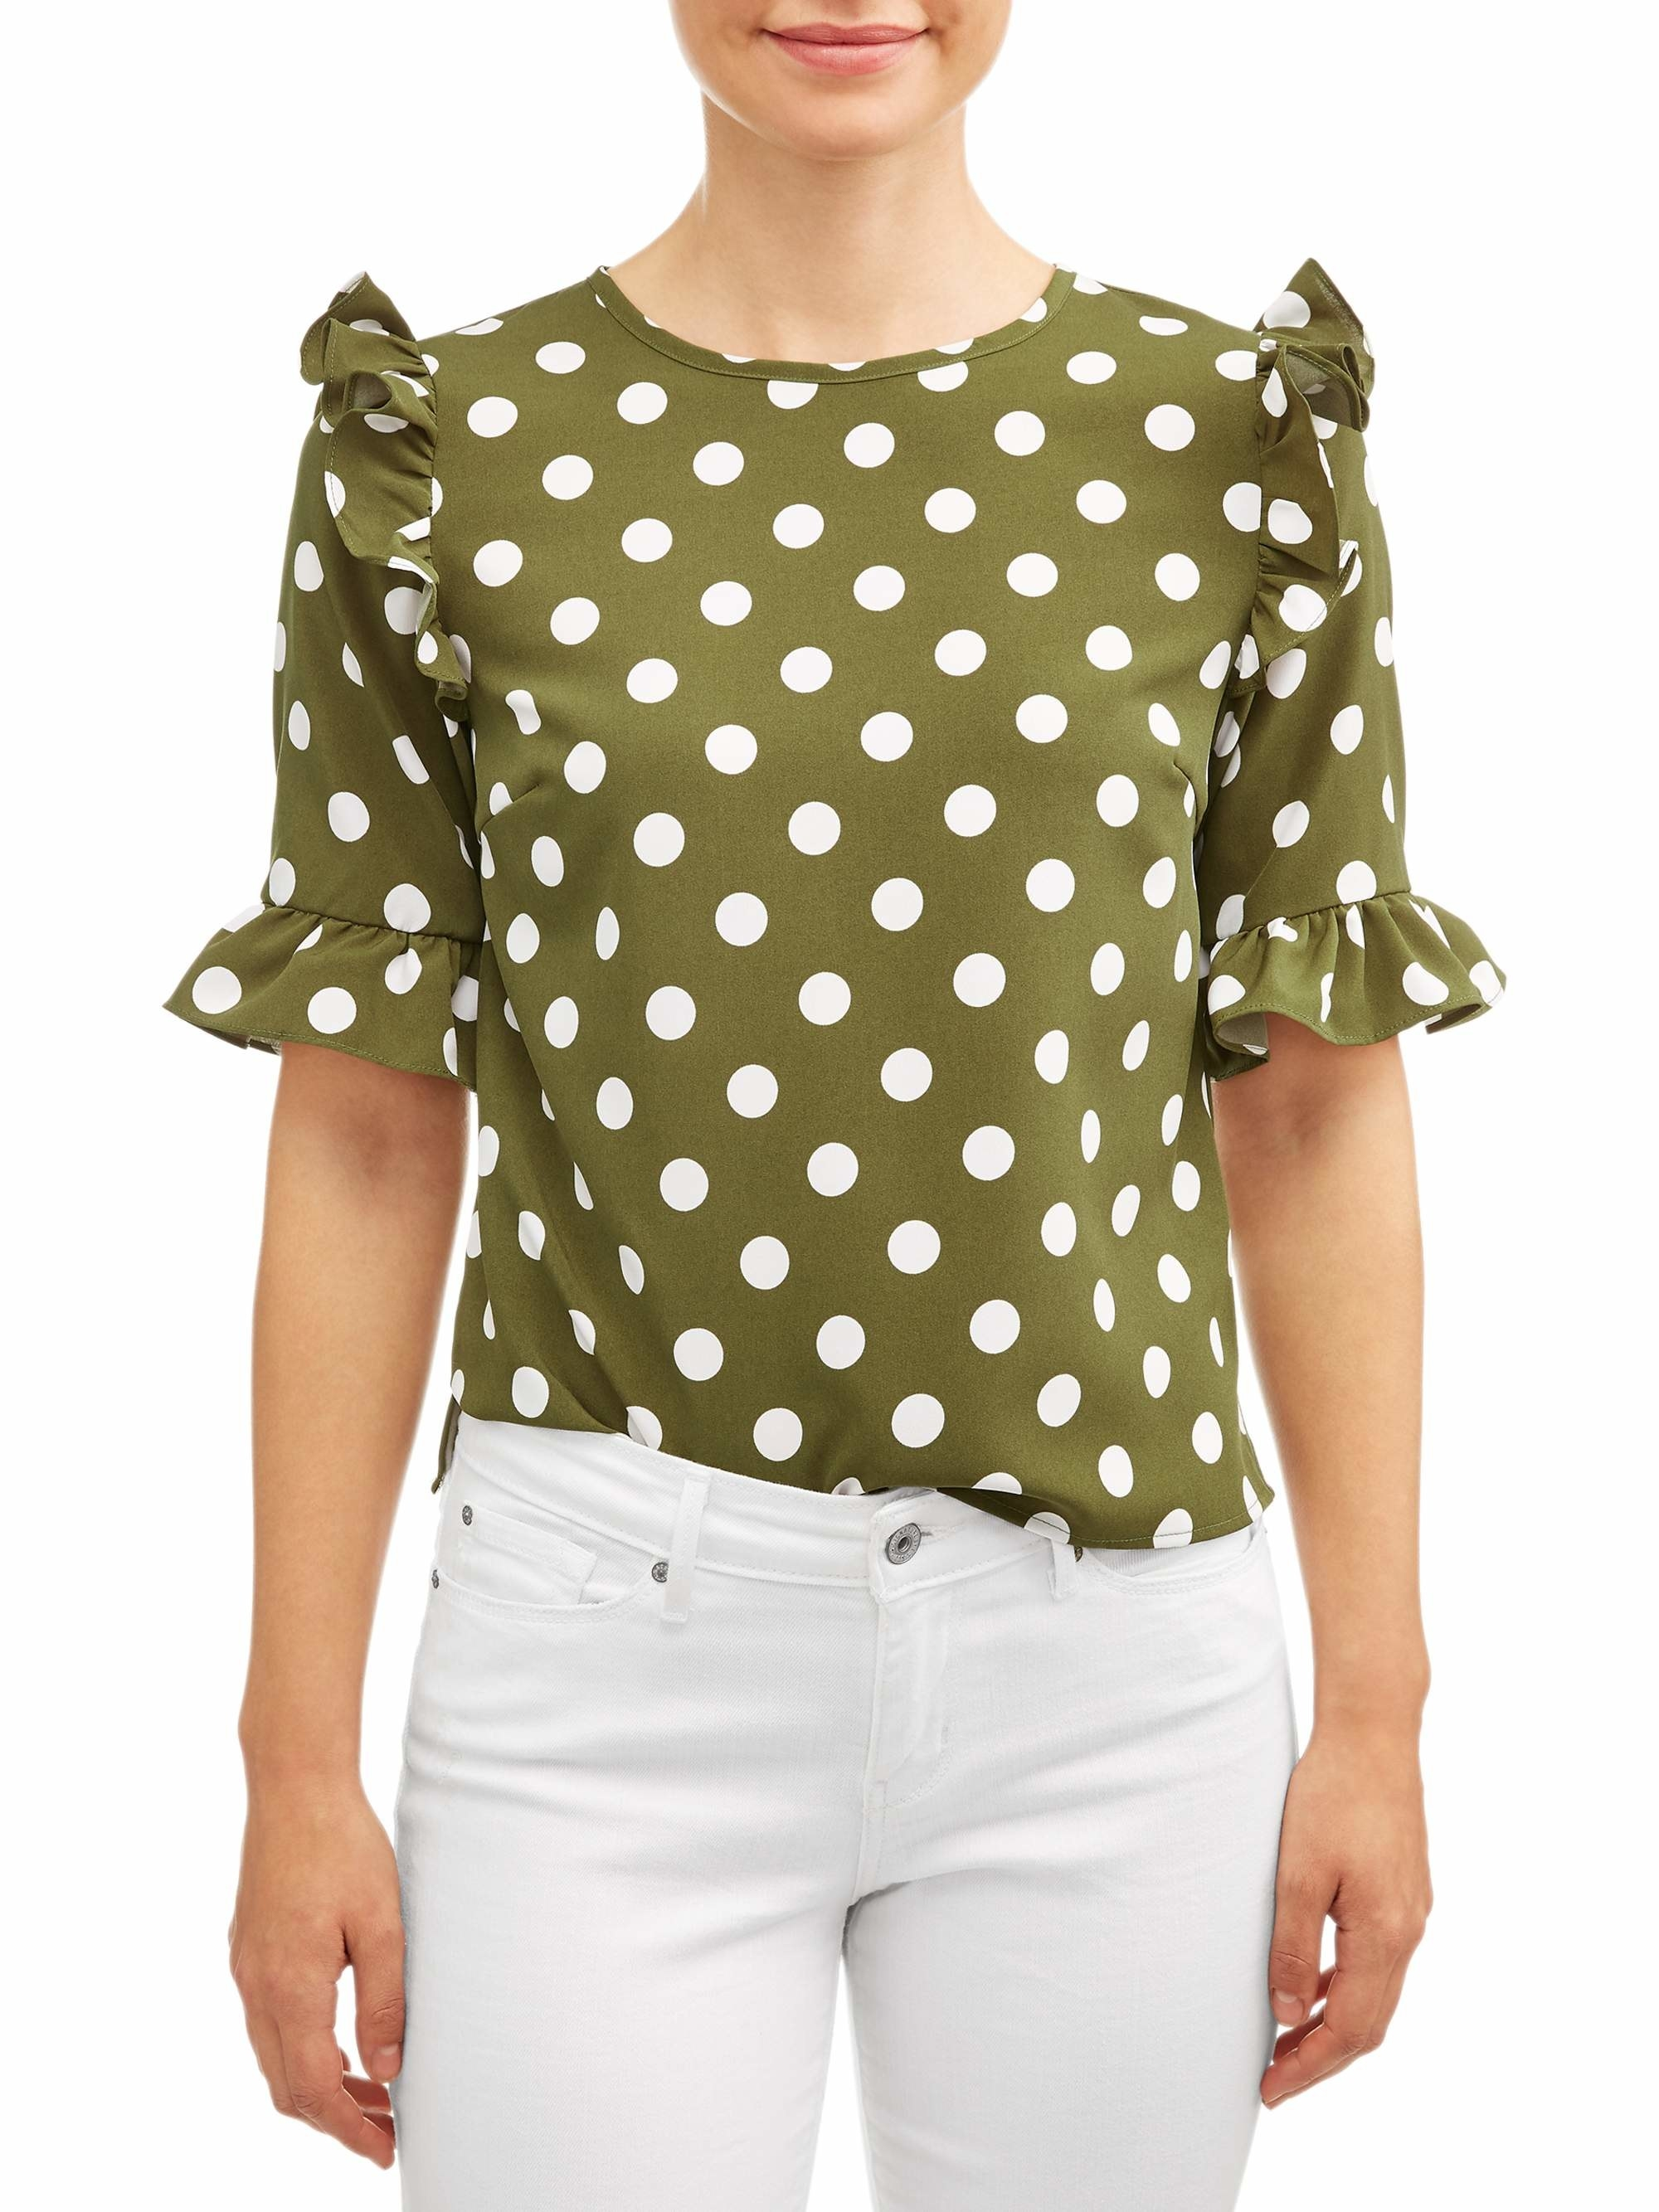 The green and white polka dot top with ruffled short sleeves